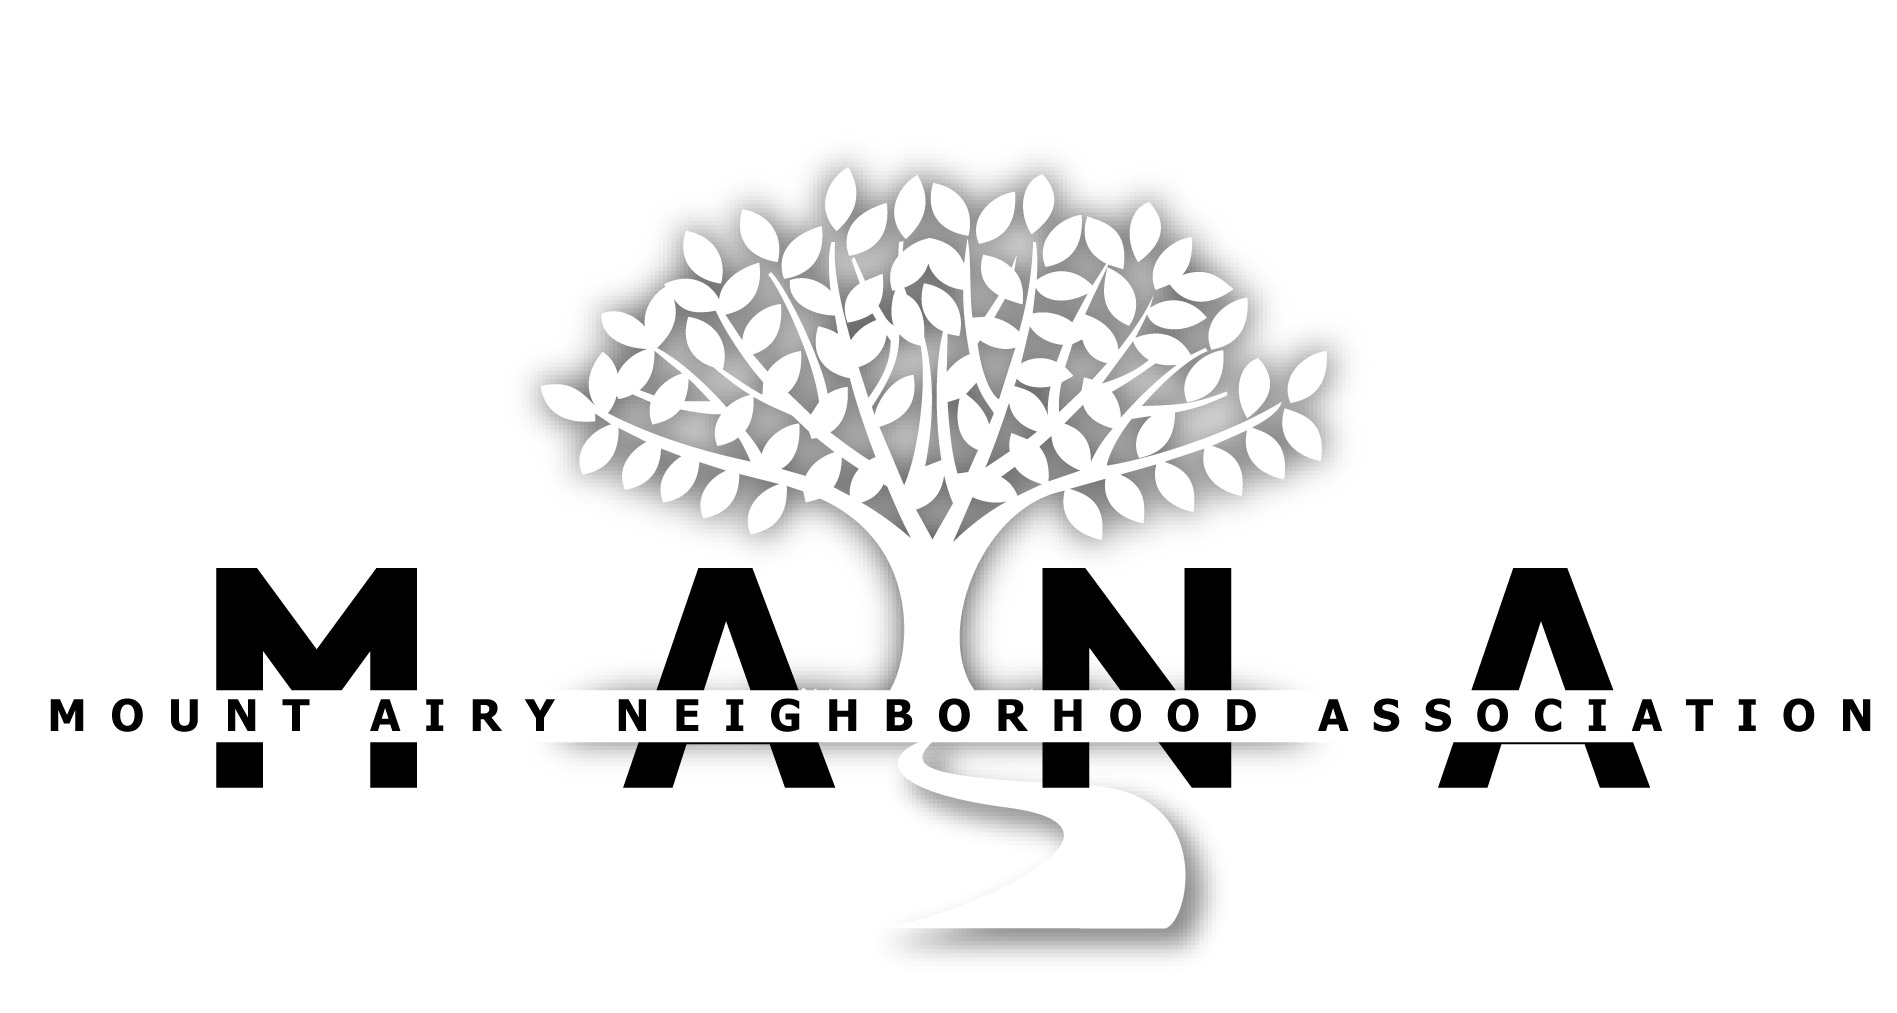 Mount Airy Neighborhood Association